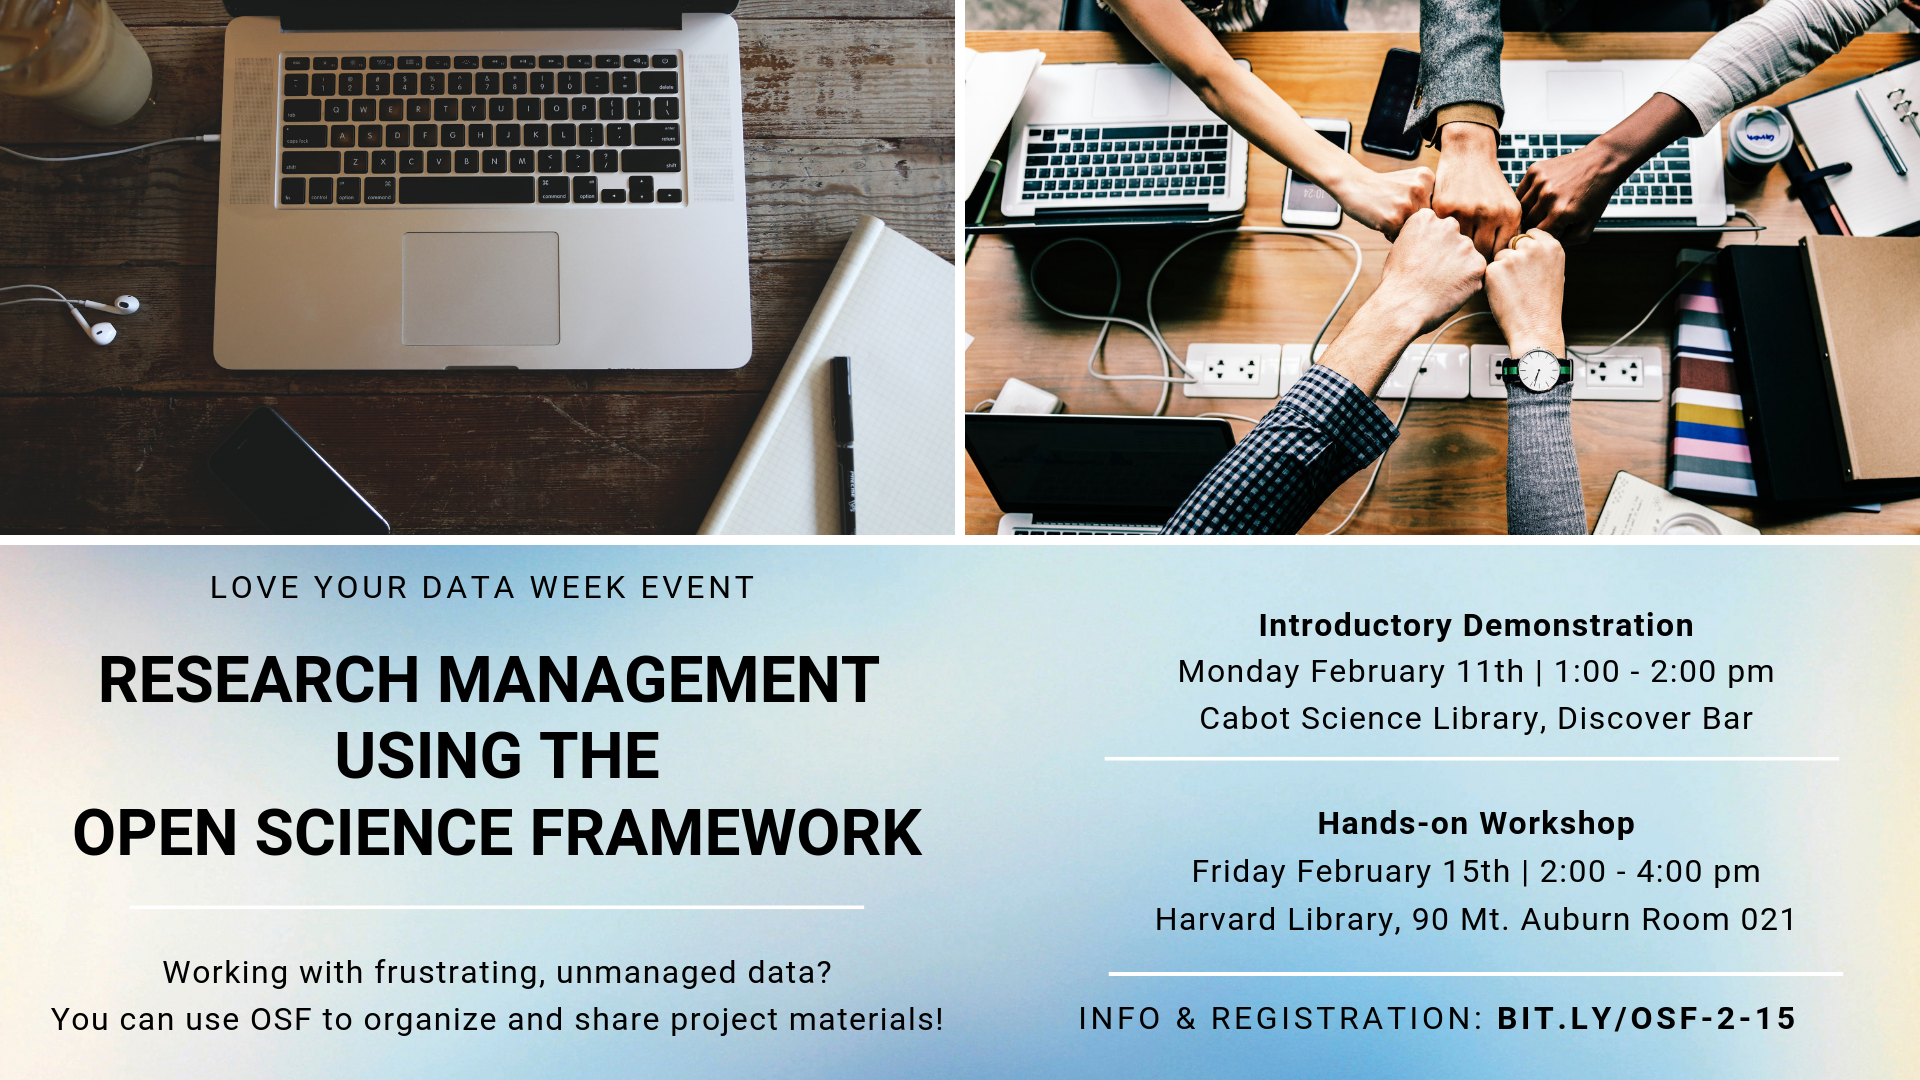 Hands-on Workshop: Research Management Using the Open Science Framework